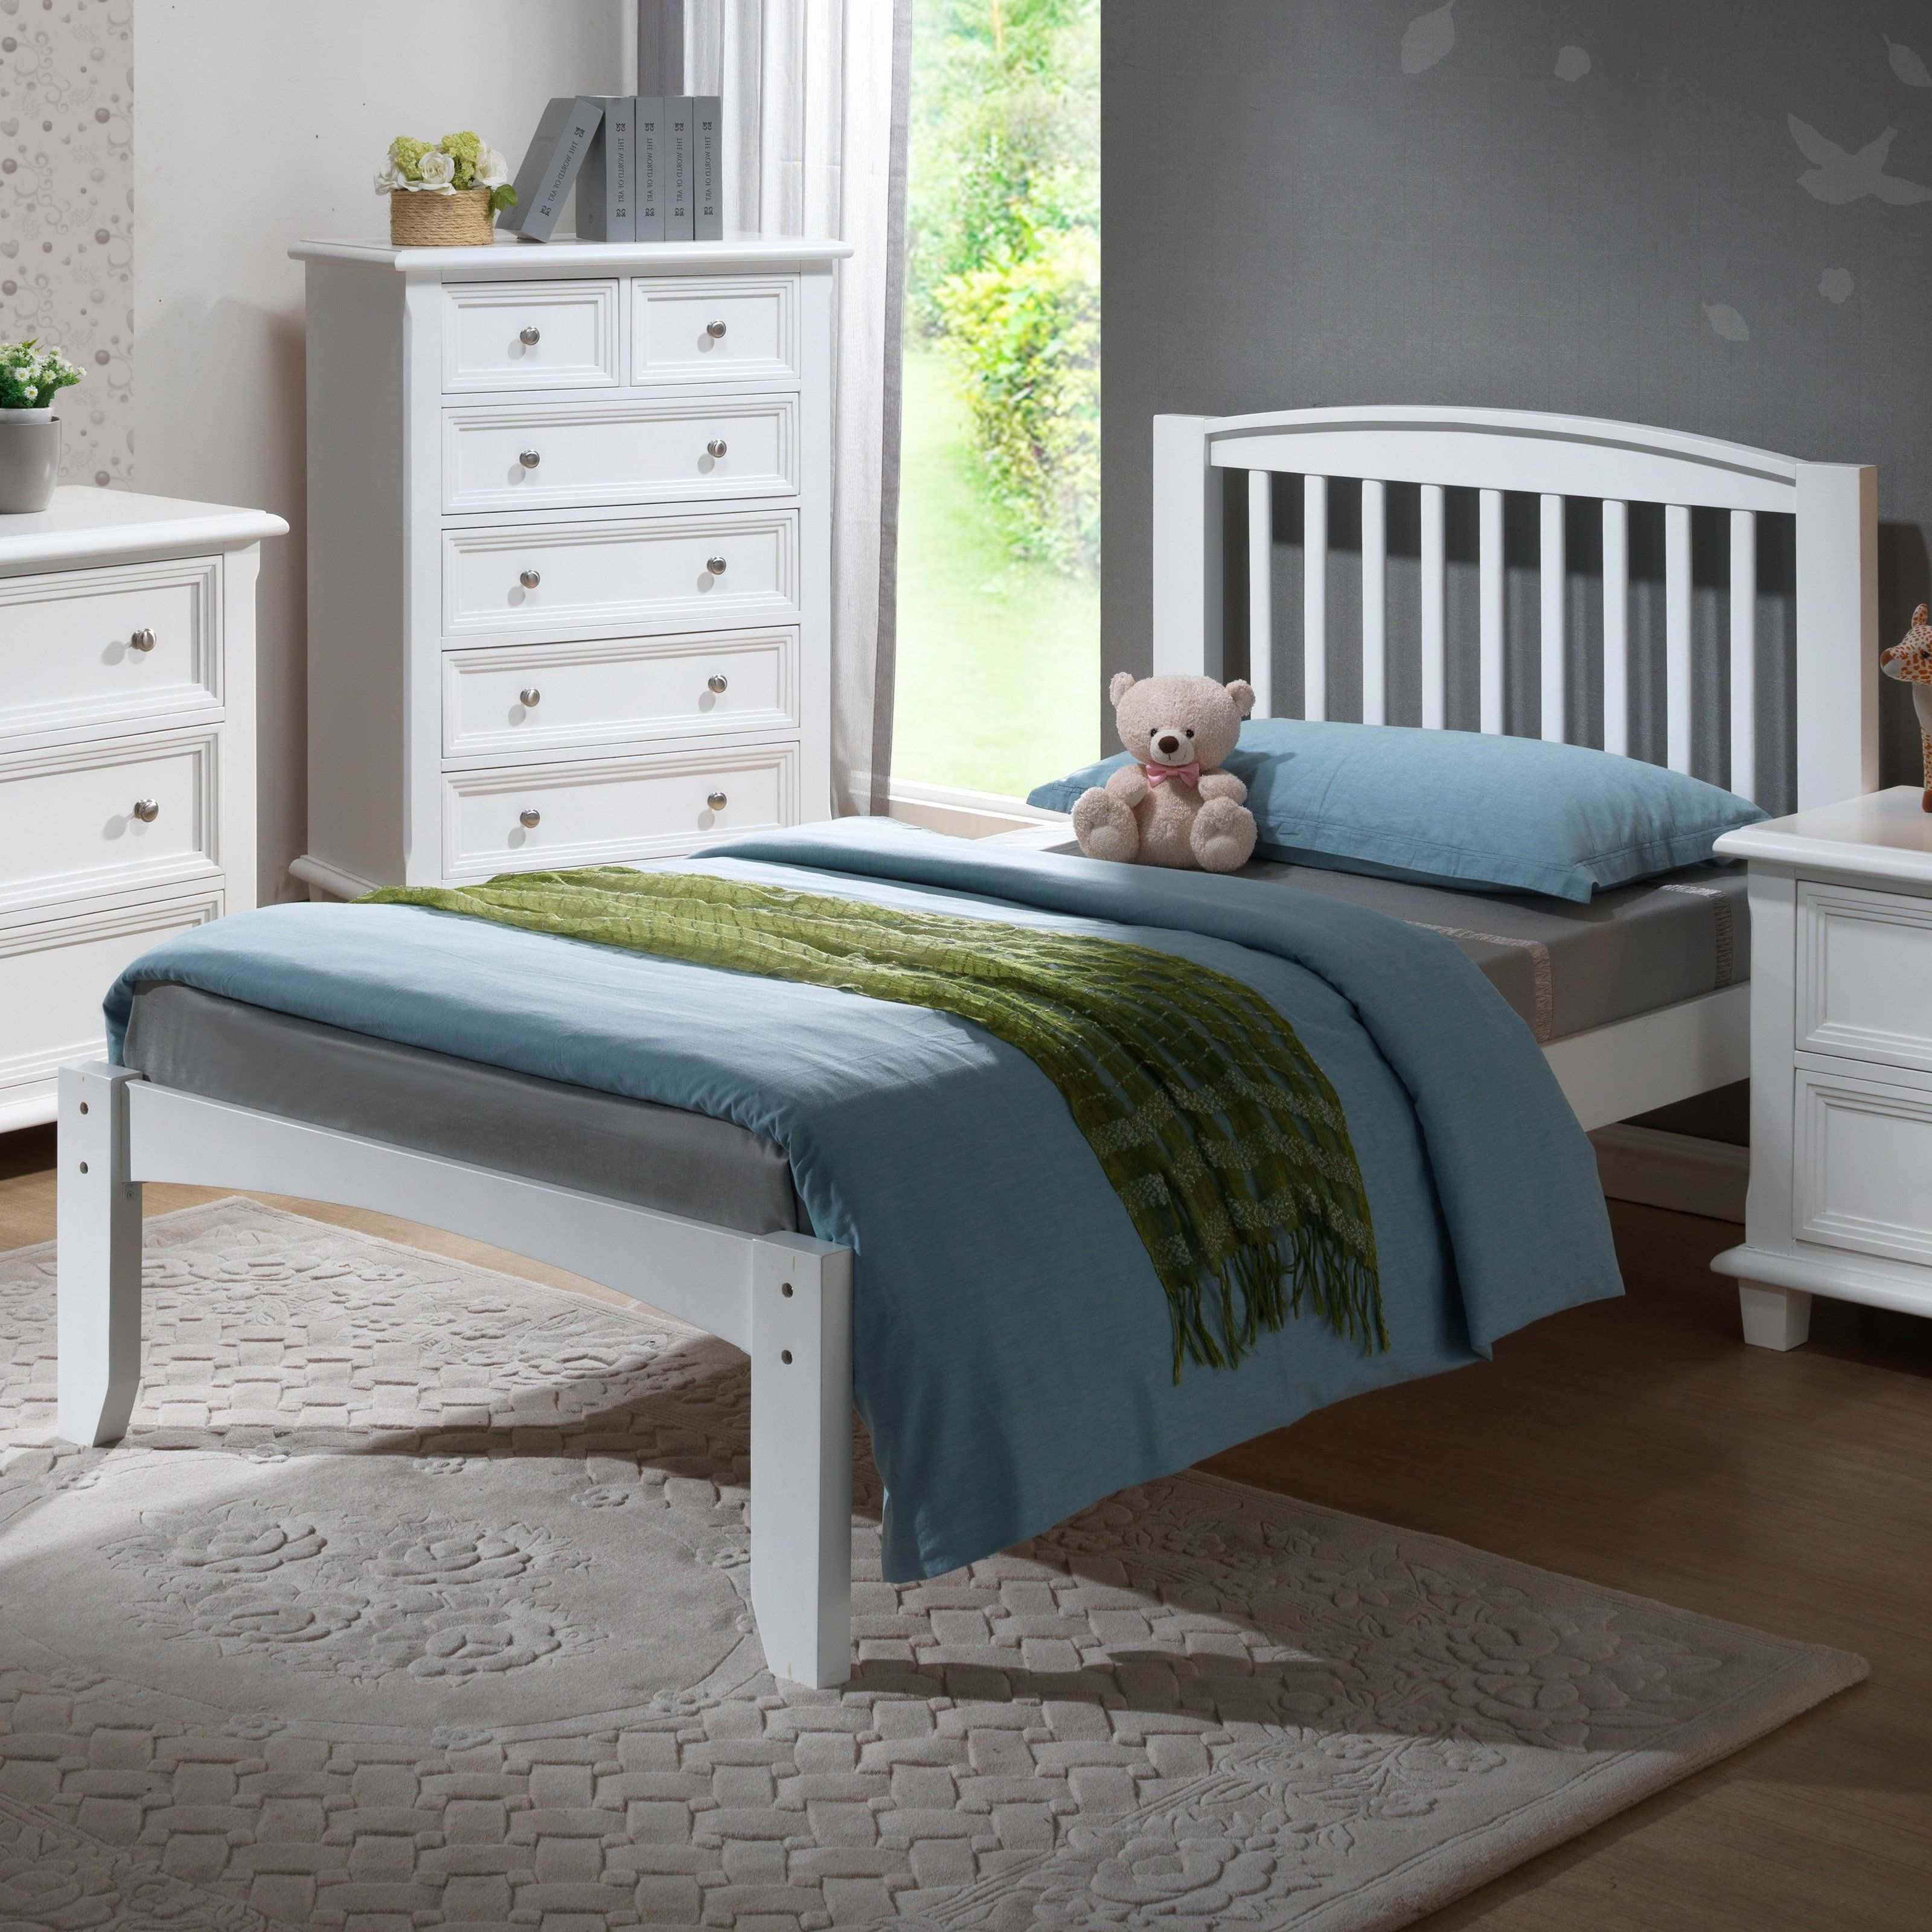 pearl products item royal furniture with trim bedroom sets number jessica twin bed standard beaded